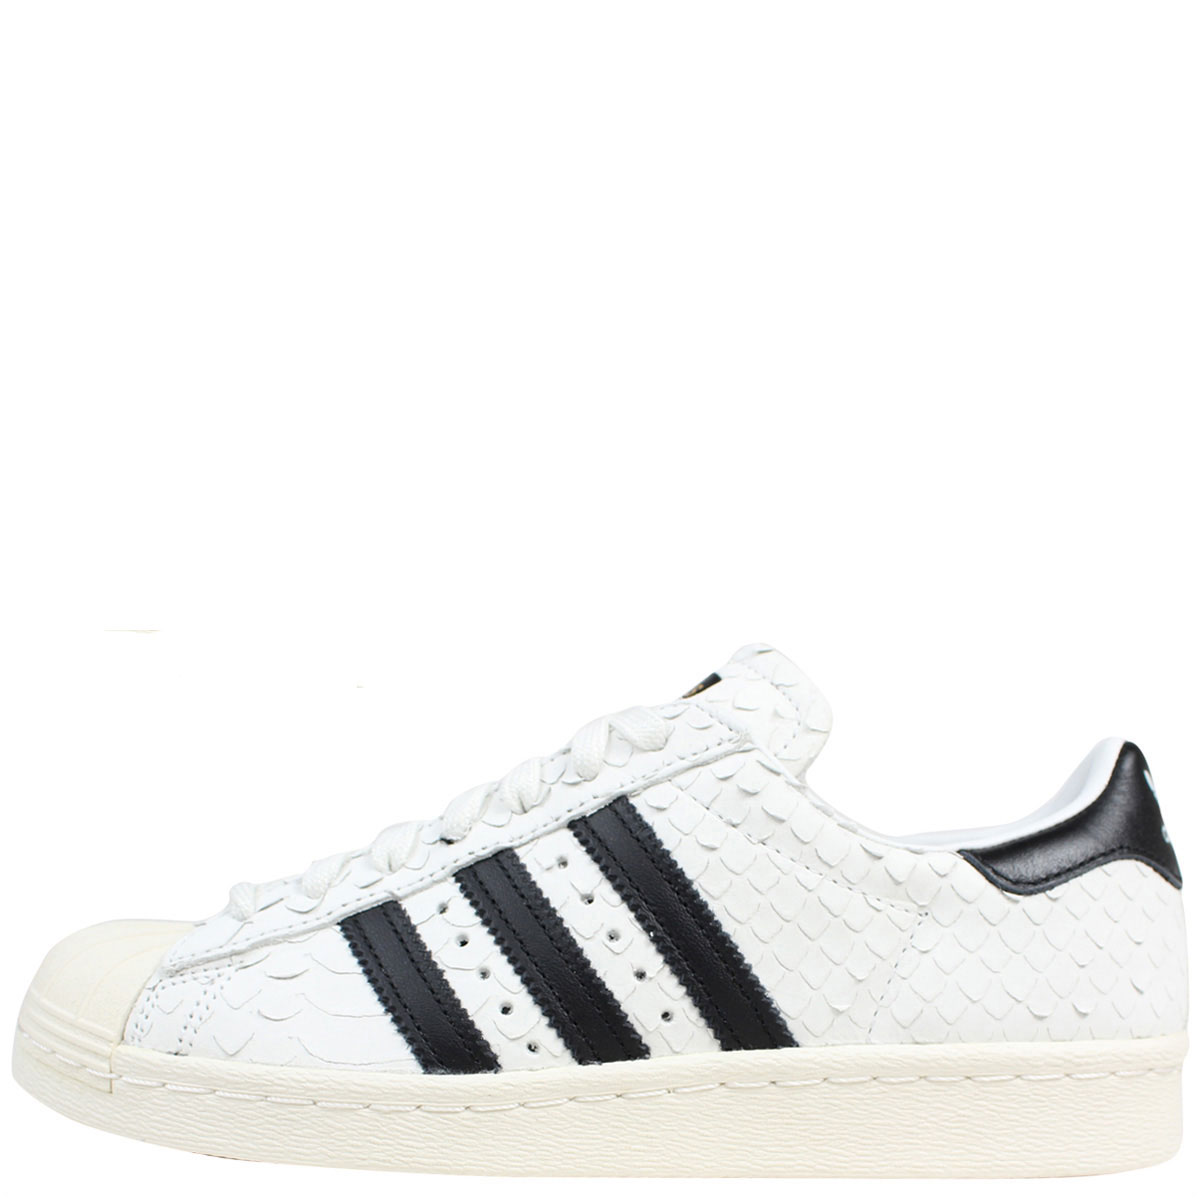 cef44d1799e Classic Mark symbolizes the adidas three lines are simple yet also said the  face of the brand impact and the classic